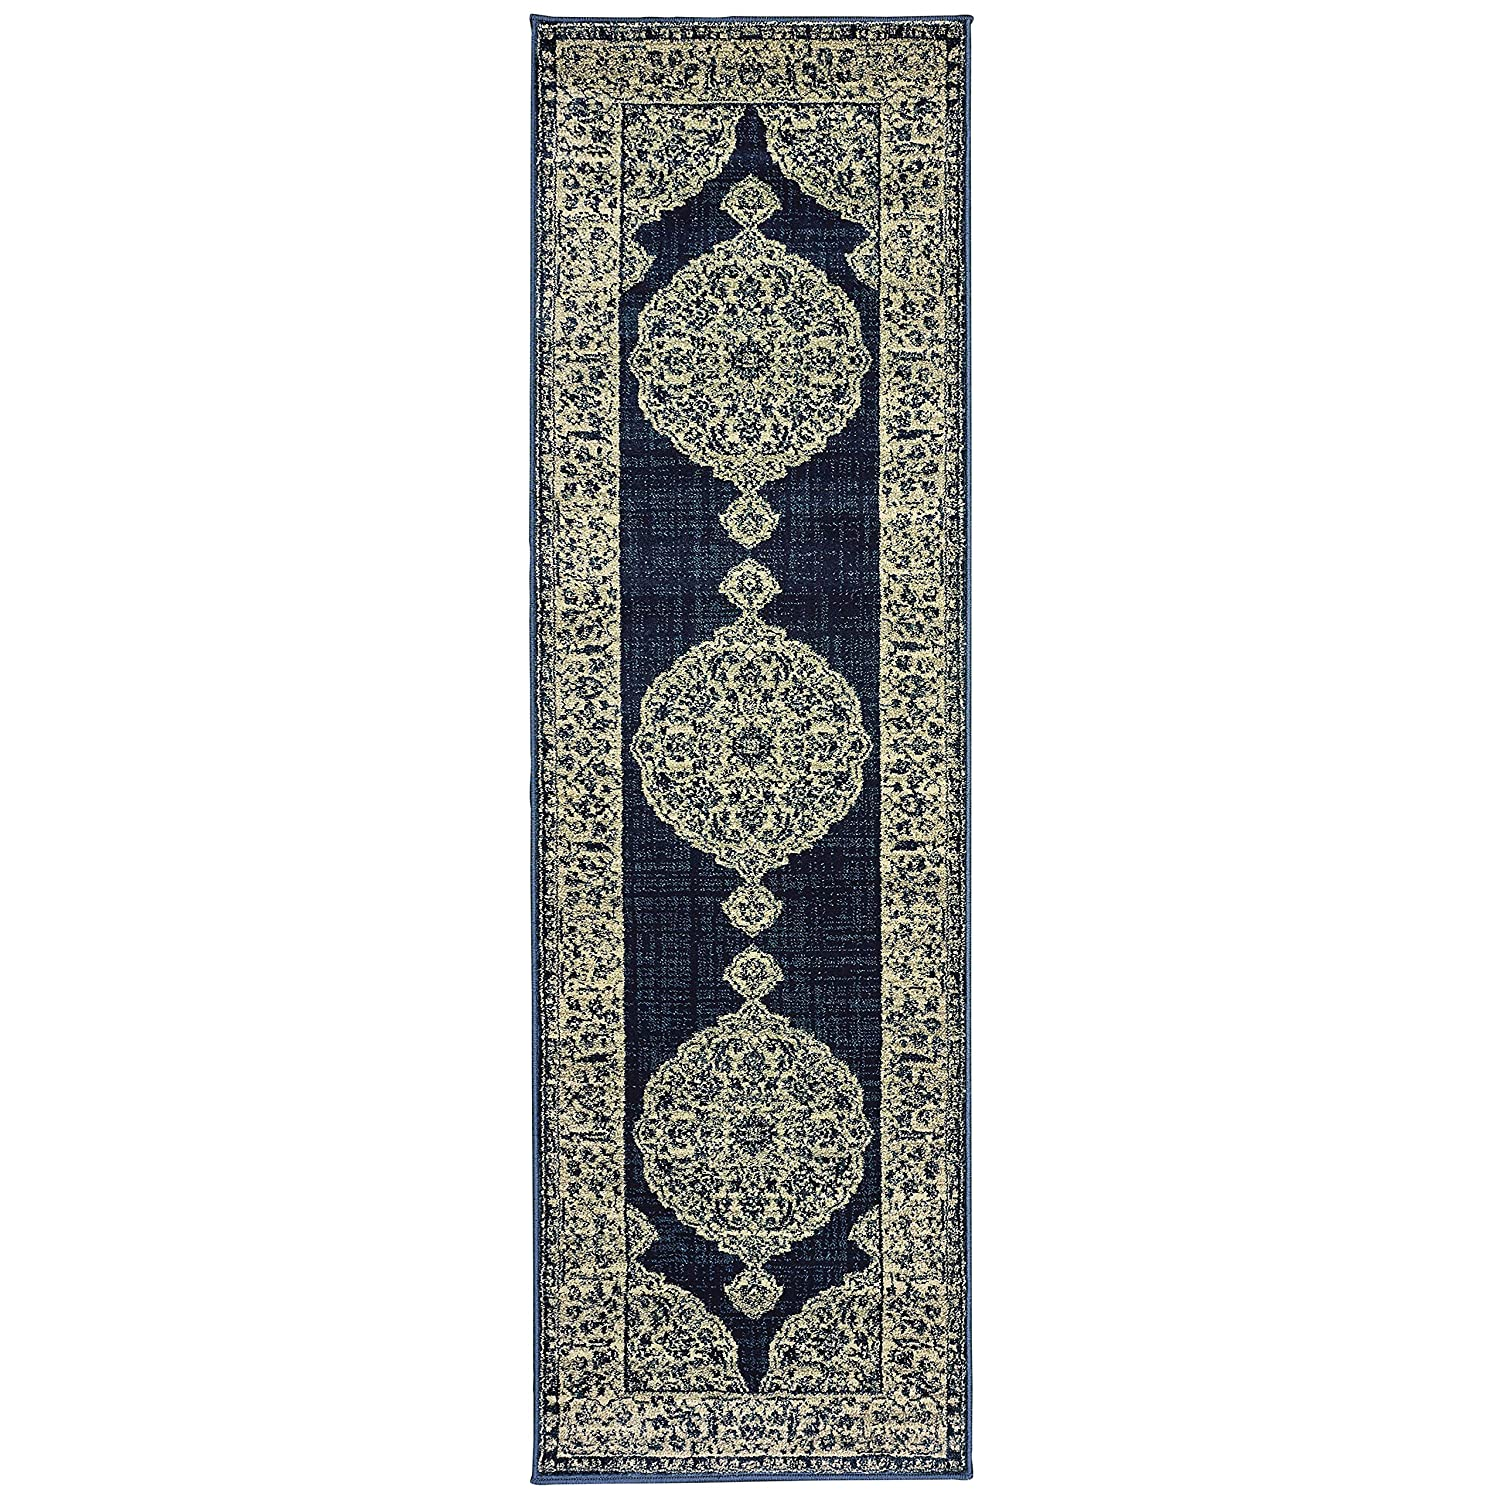 Christopher Knight Home CK-A7397 Lexington Medallion Indoor Runner 2ft 3in X 7ft 6in Navy Grey